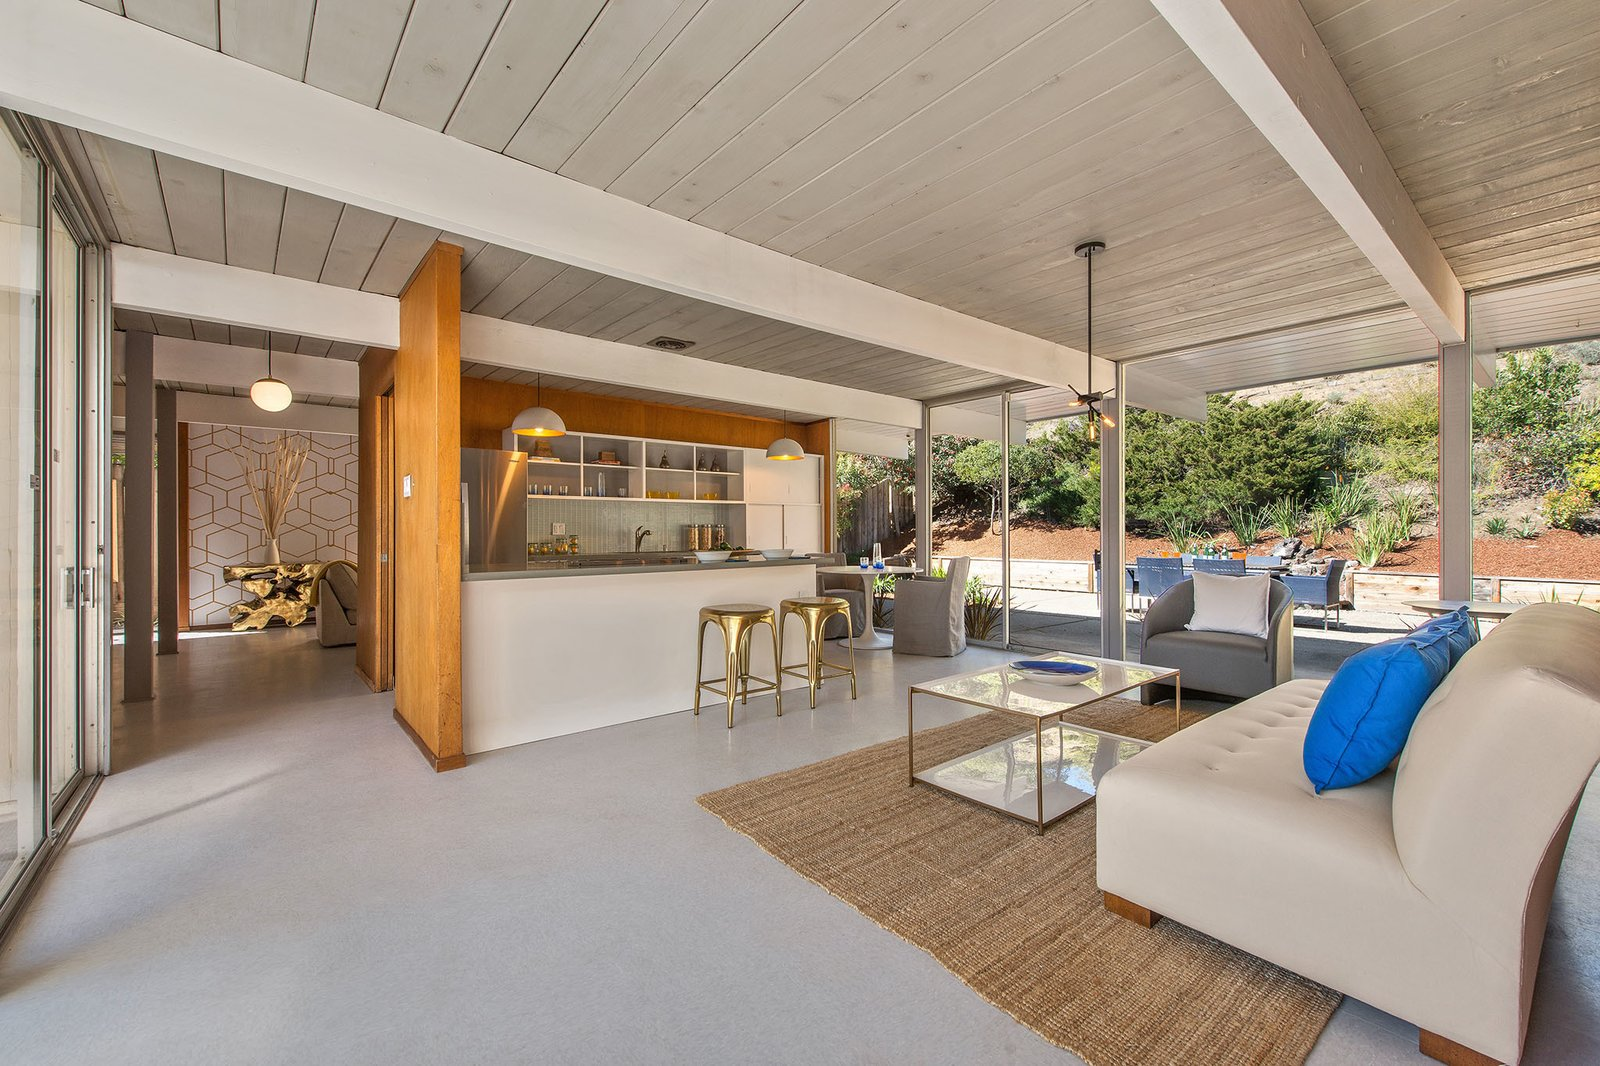 The open plan kitchen living area was designed for entertaining.